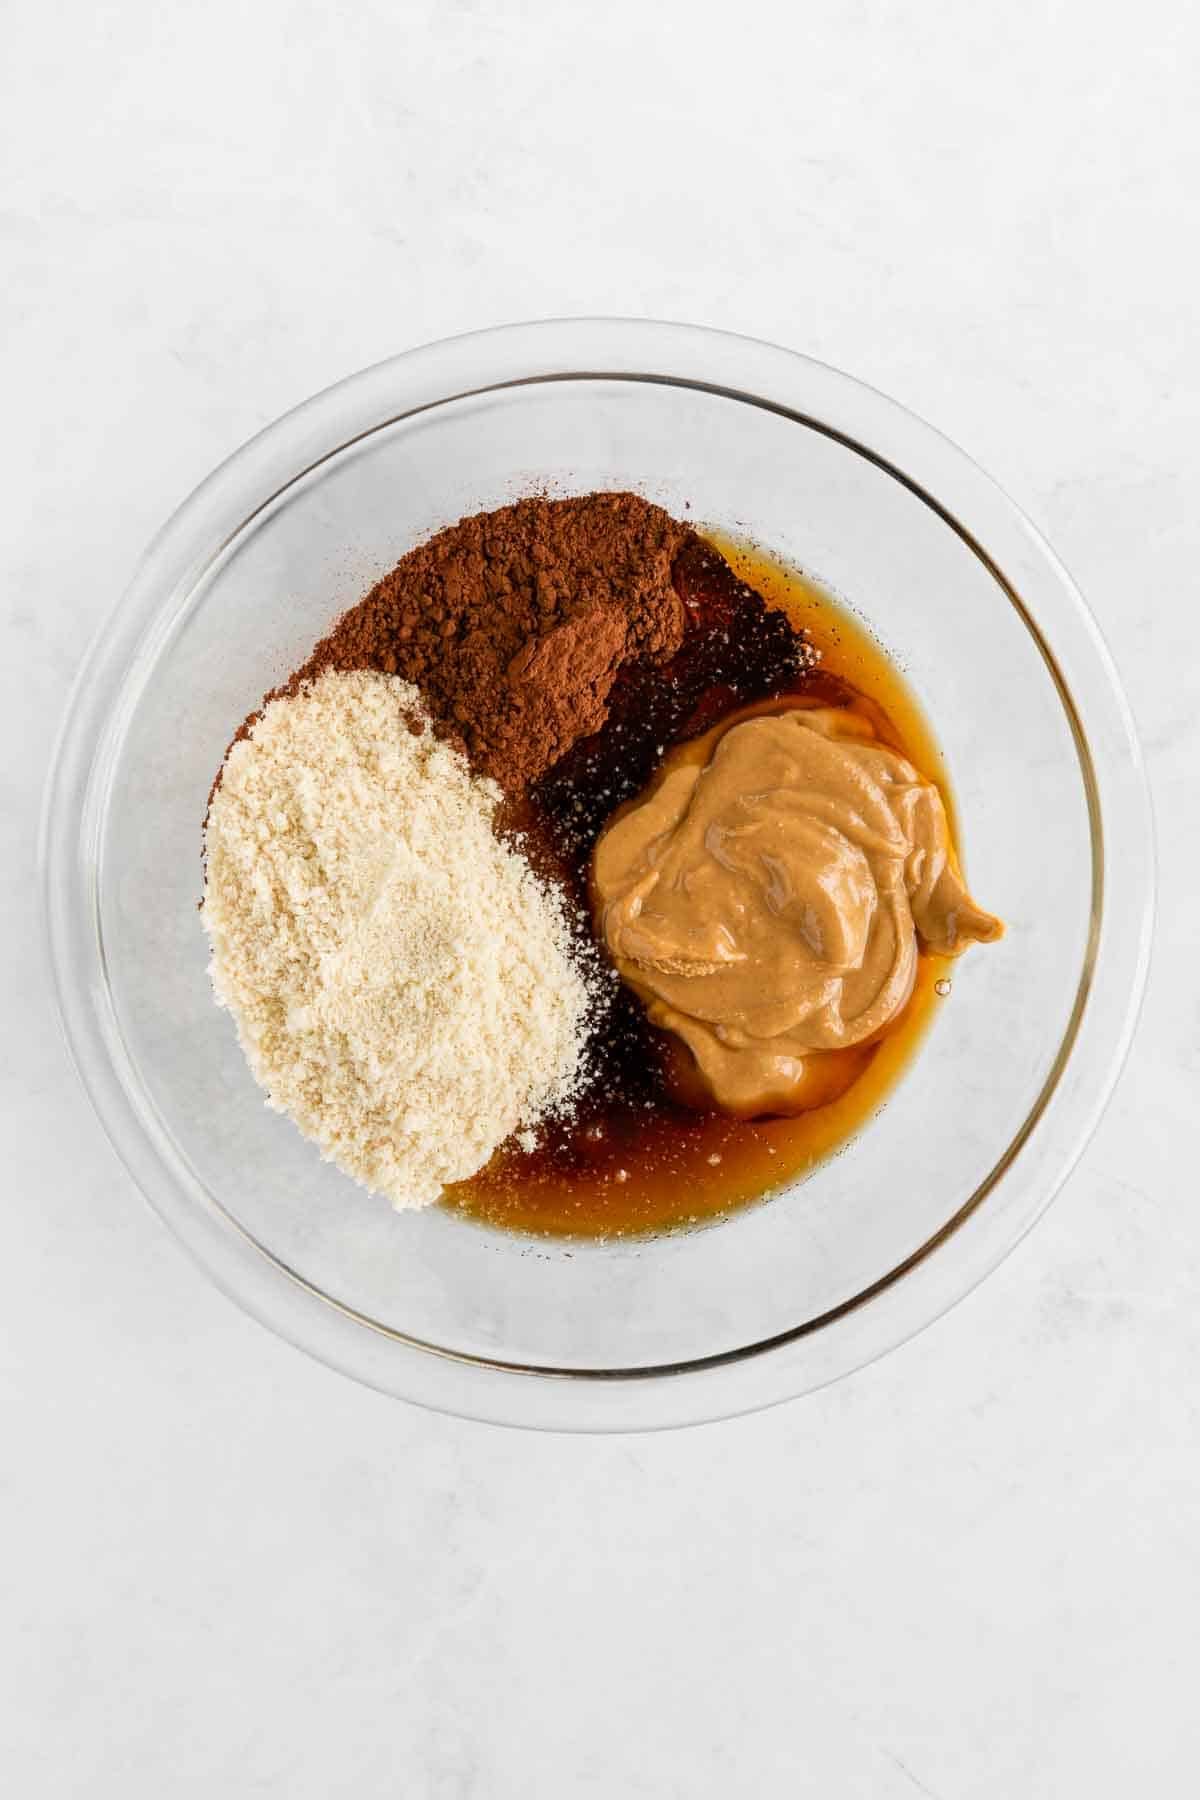 almond flour, peanut butter, cocoa powder, and maple syrup in a glass pyrex mixing bowl